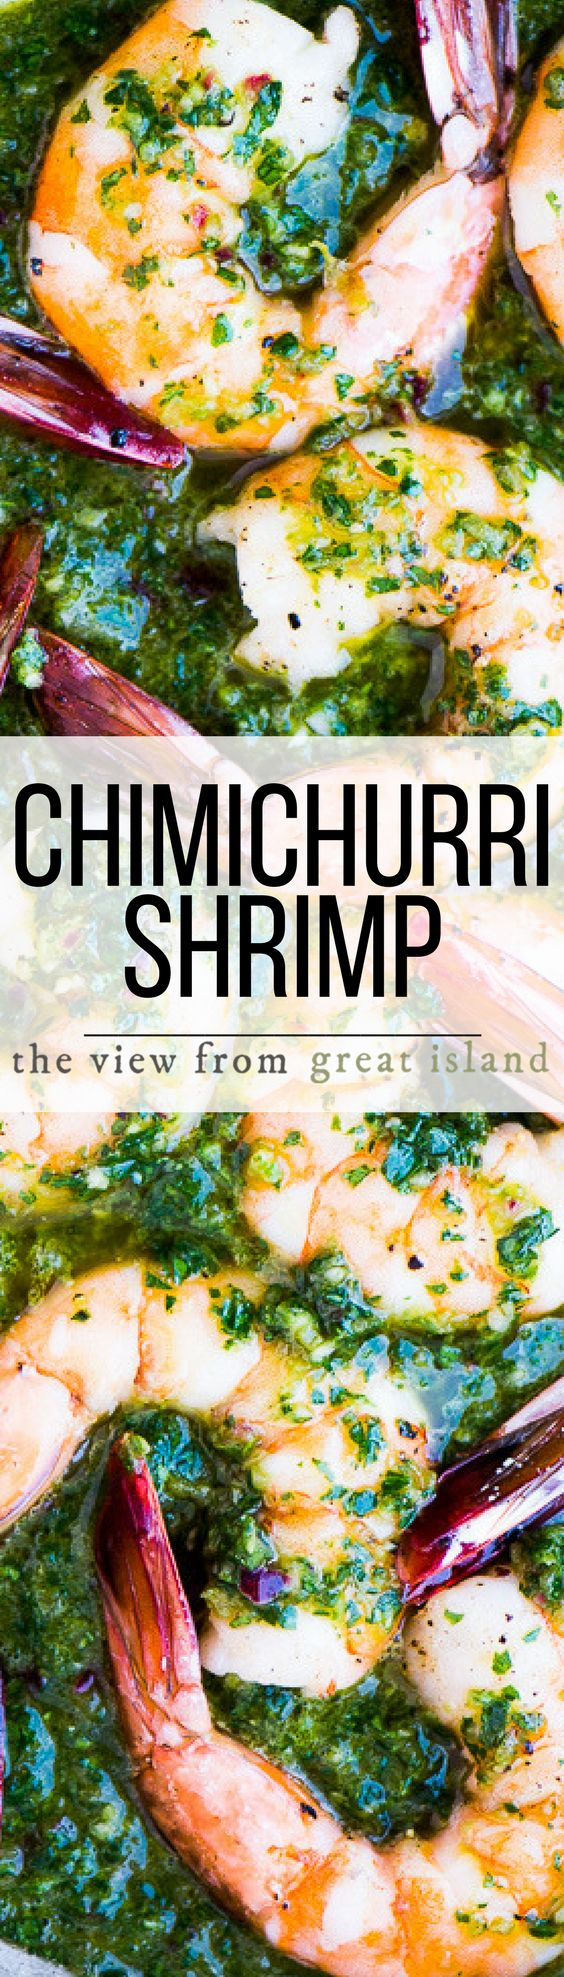 Chimichurri Shrimp ~ this can be a low carb and paleo friendly appetizer, or a comforting 30-minute meal when you pair it with pasta, couscous, or warm toasty bread. | seafood | healthy | main course | 30 minute meal |